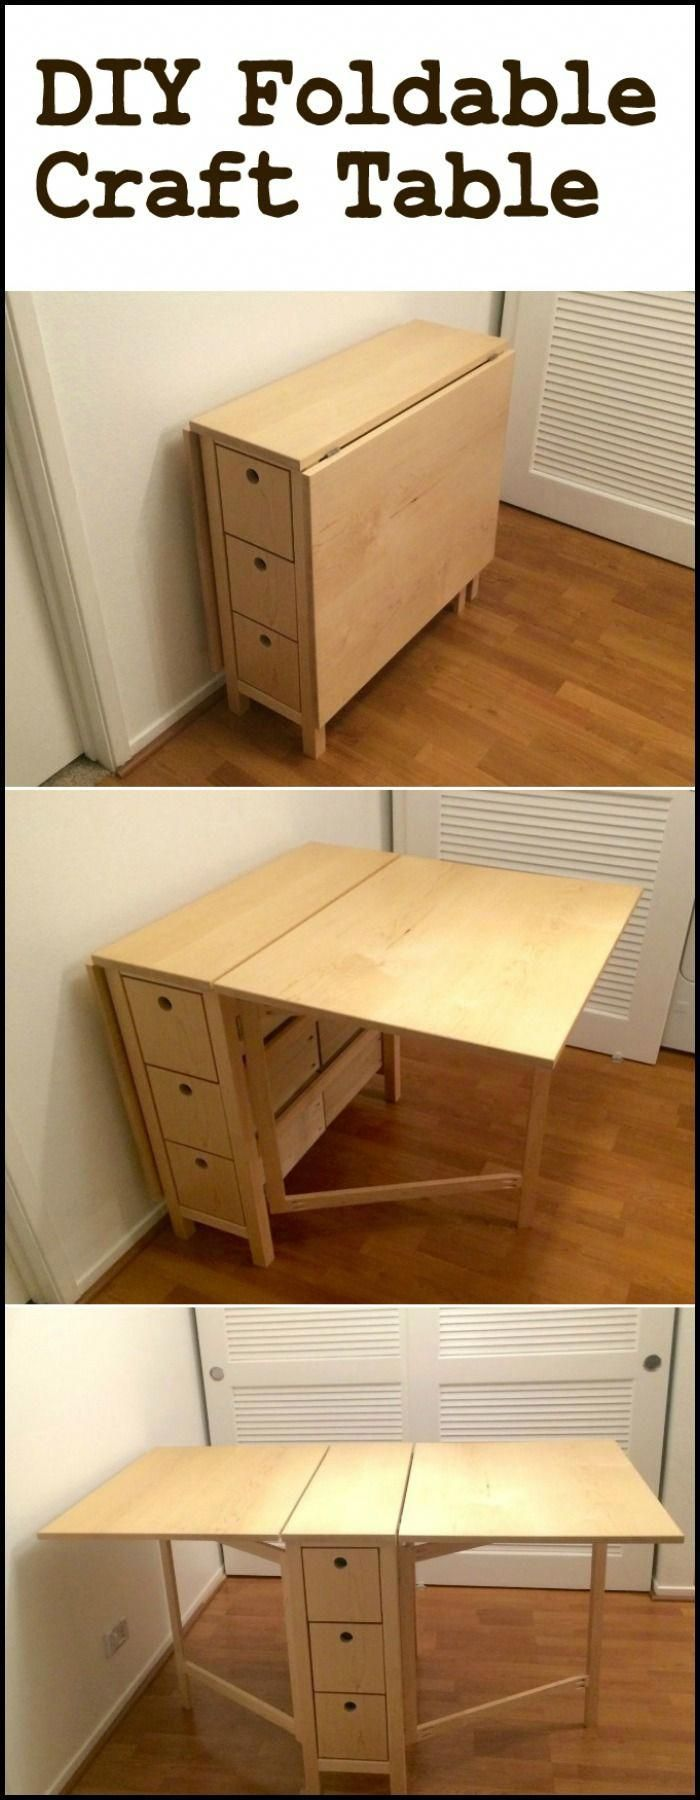 Create your own space-saving craft station by building this DIY foldable craft t...